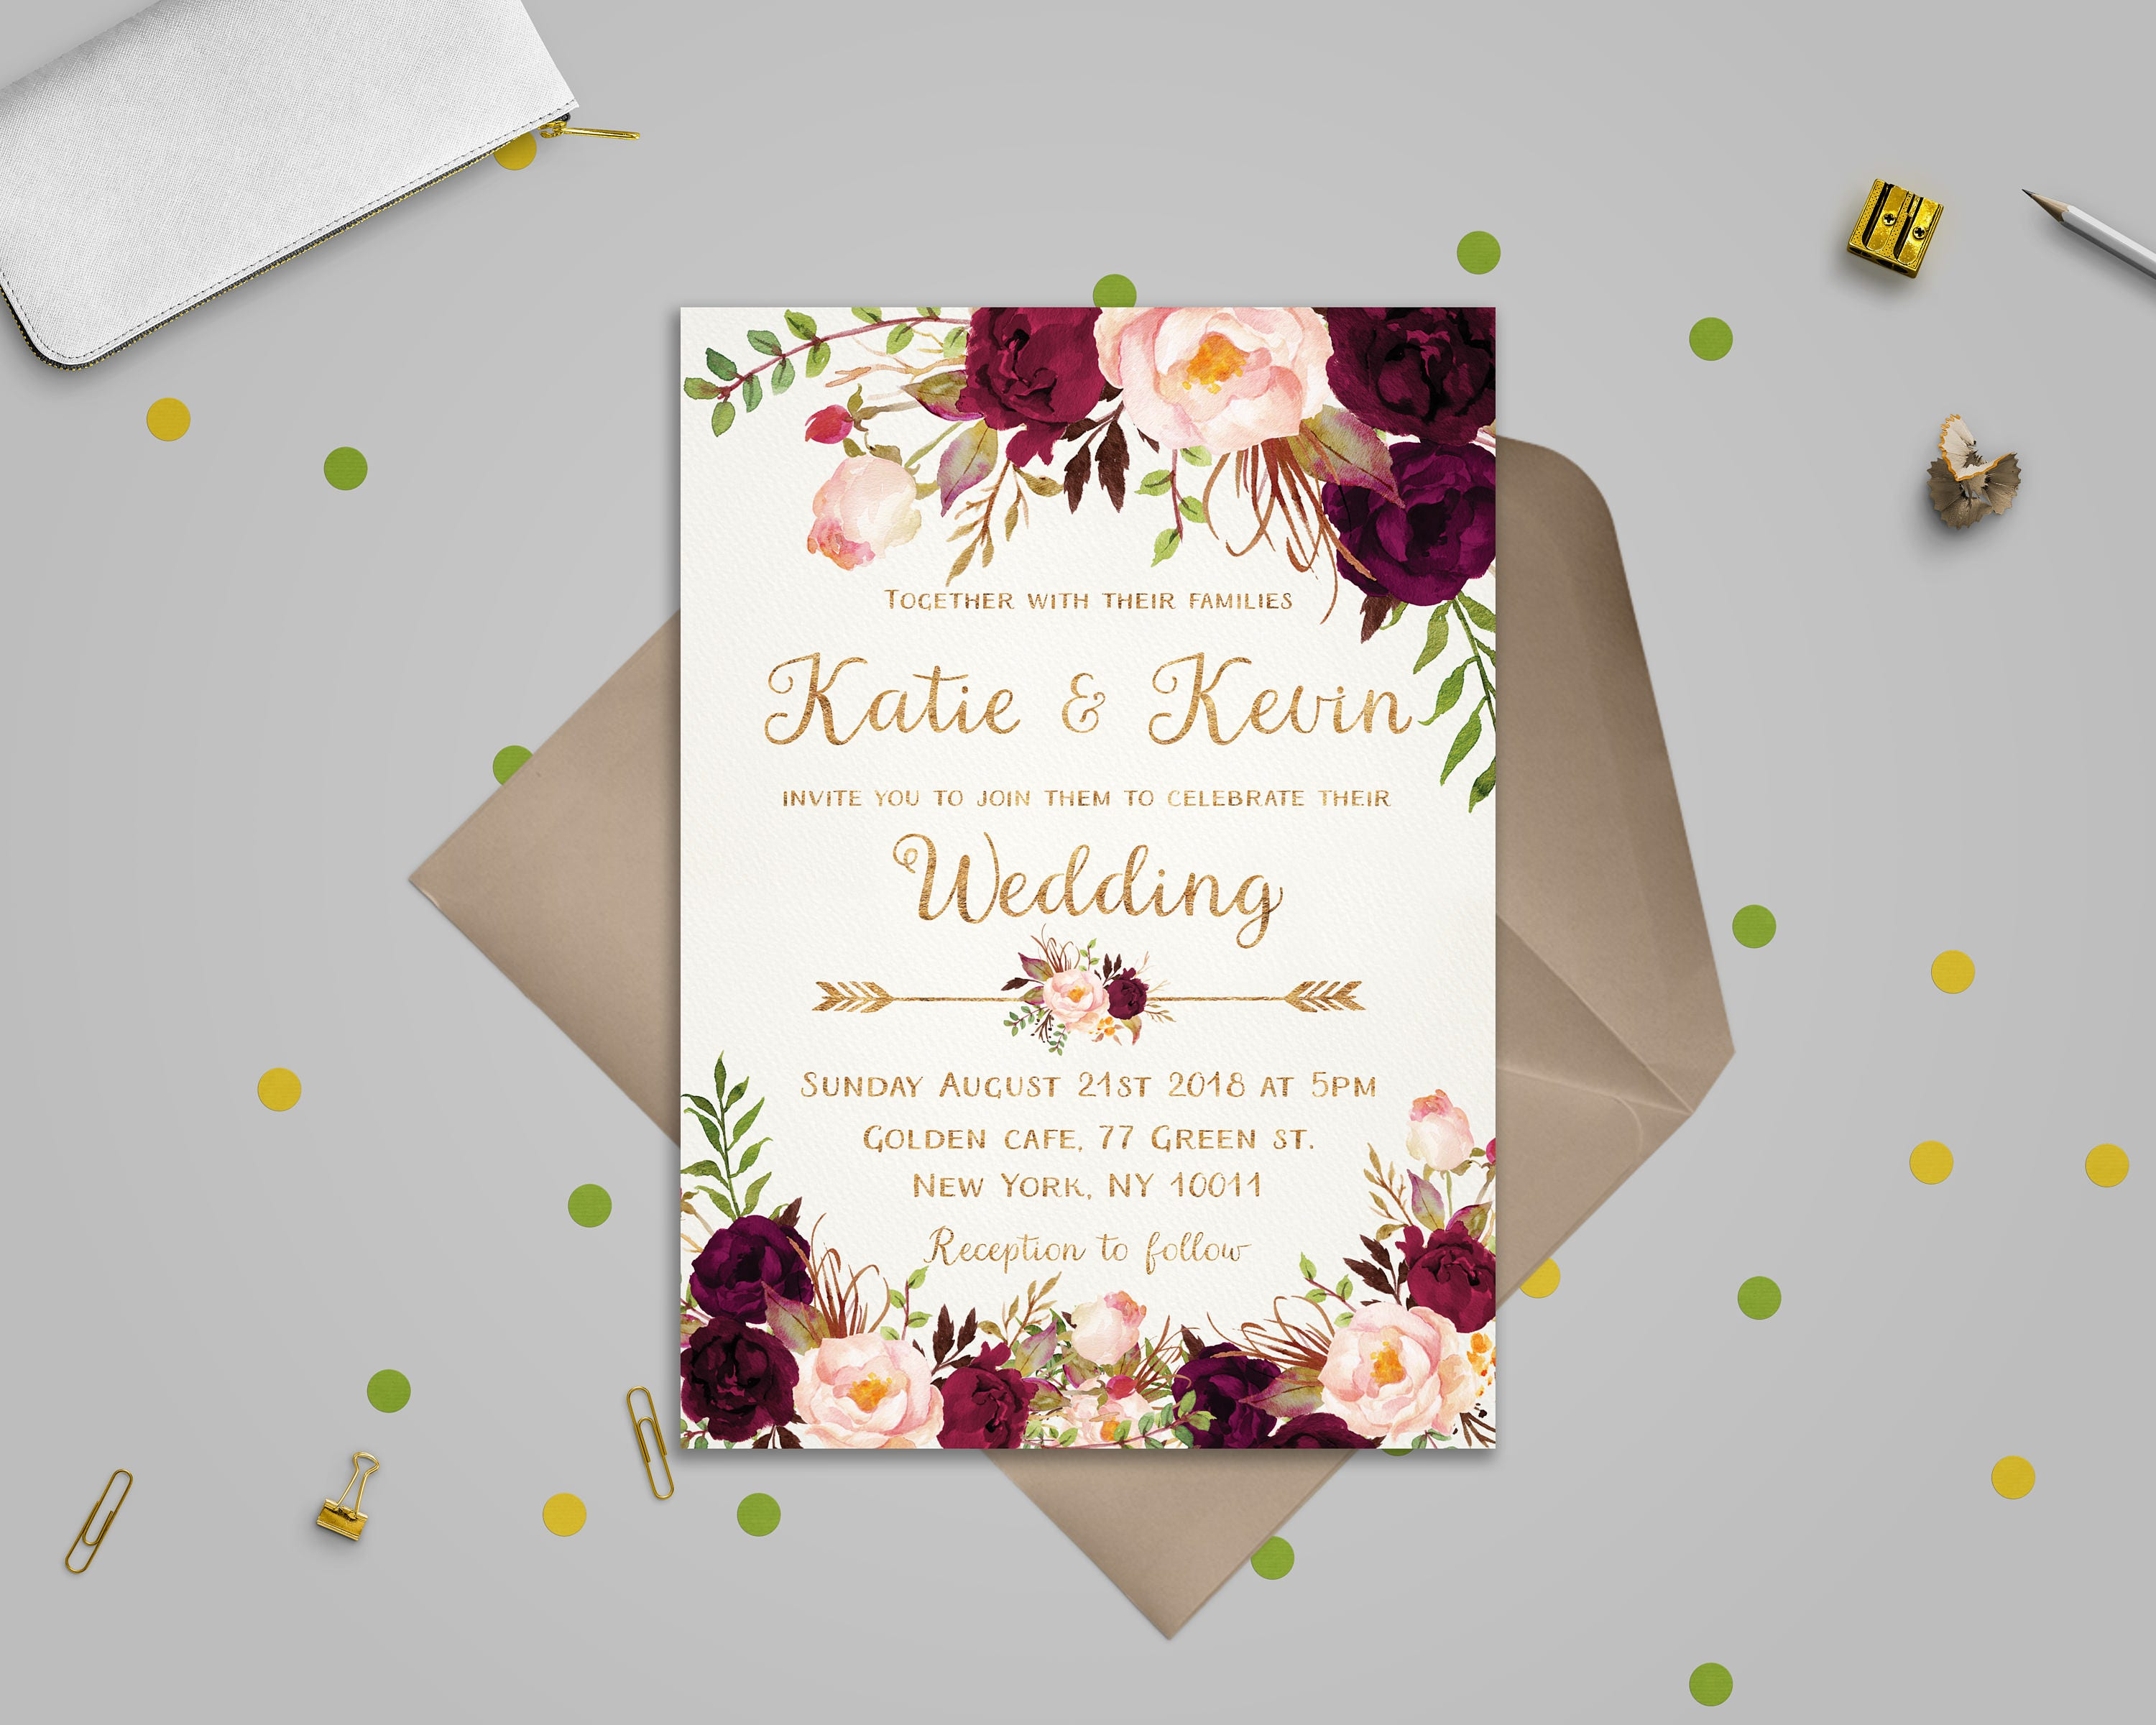 Free Samples Wedding Invitations: Floral Wedding Invitation Template Wedding Invitation